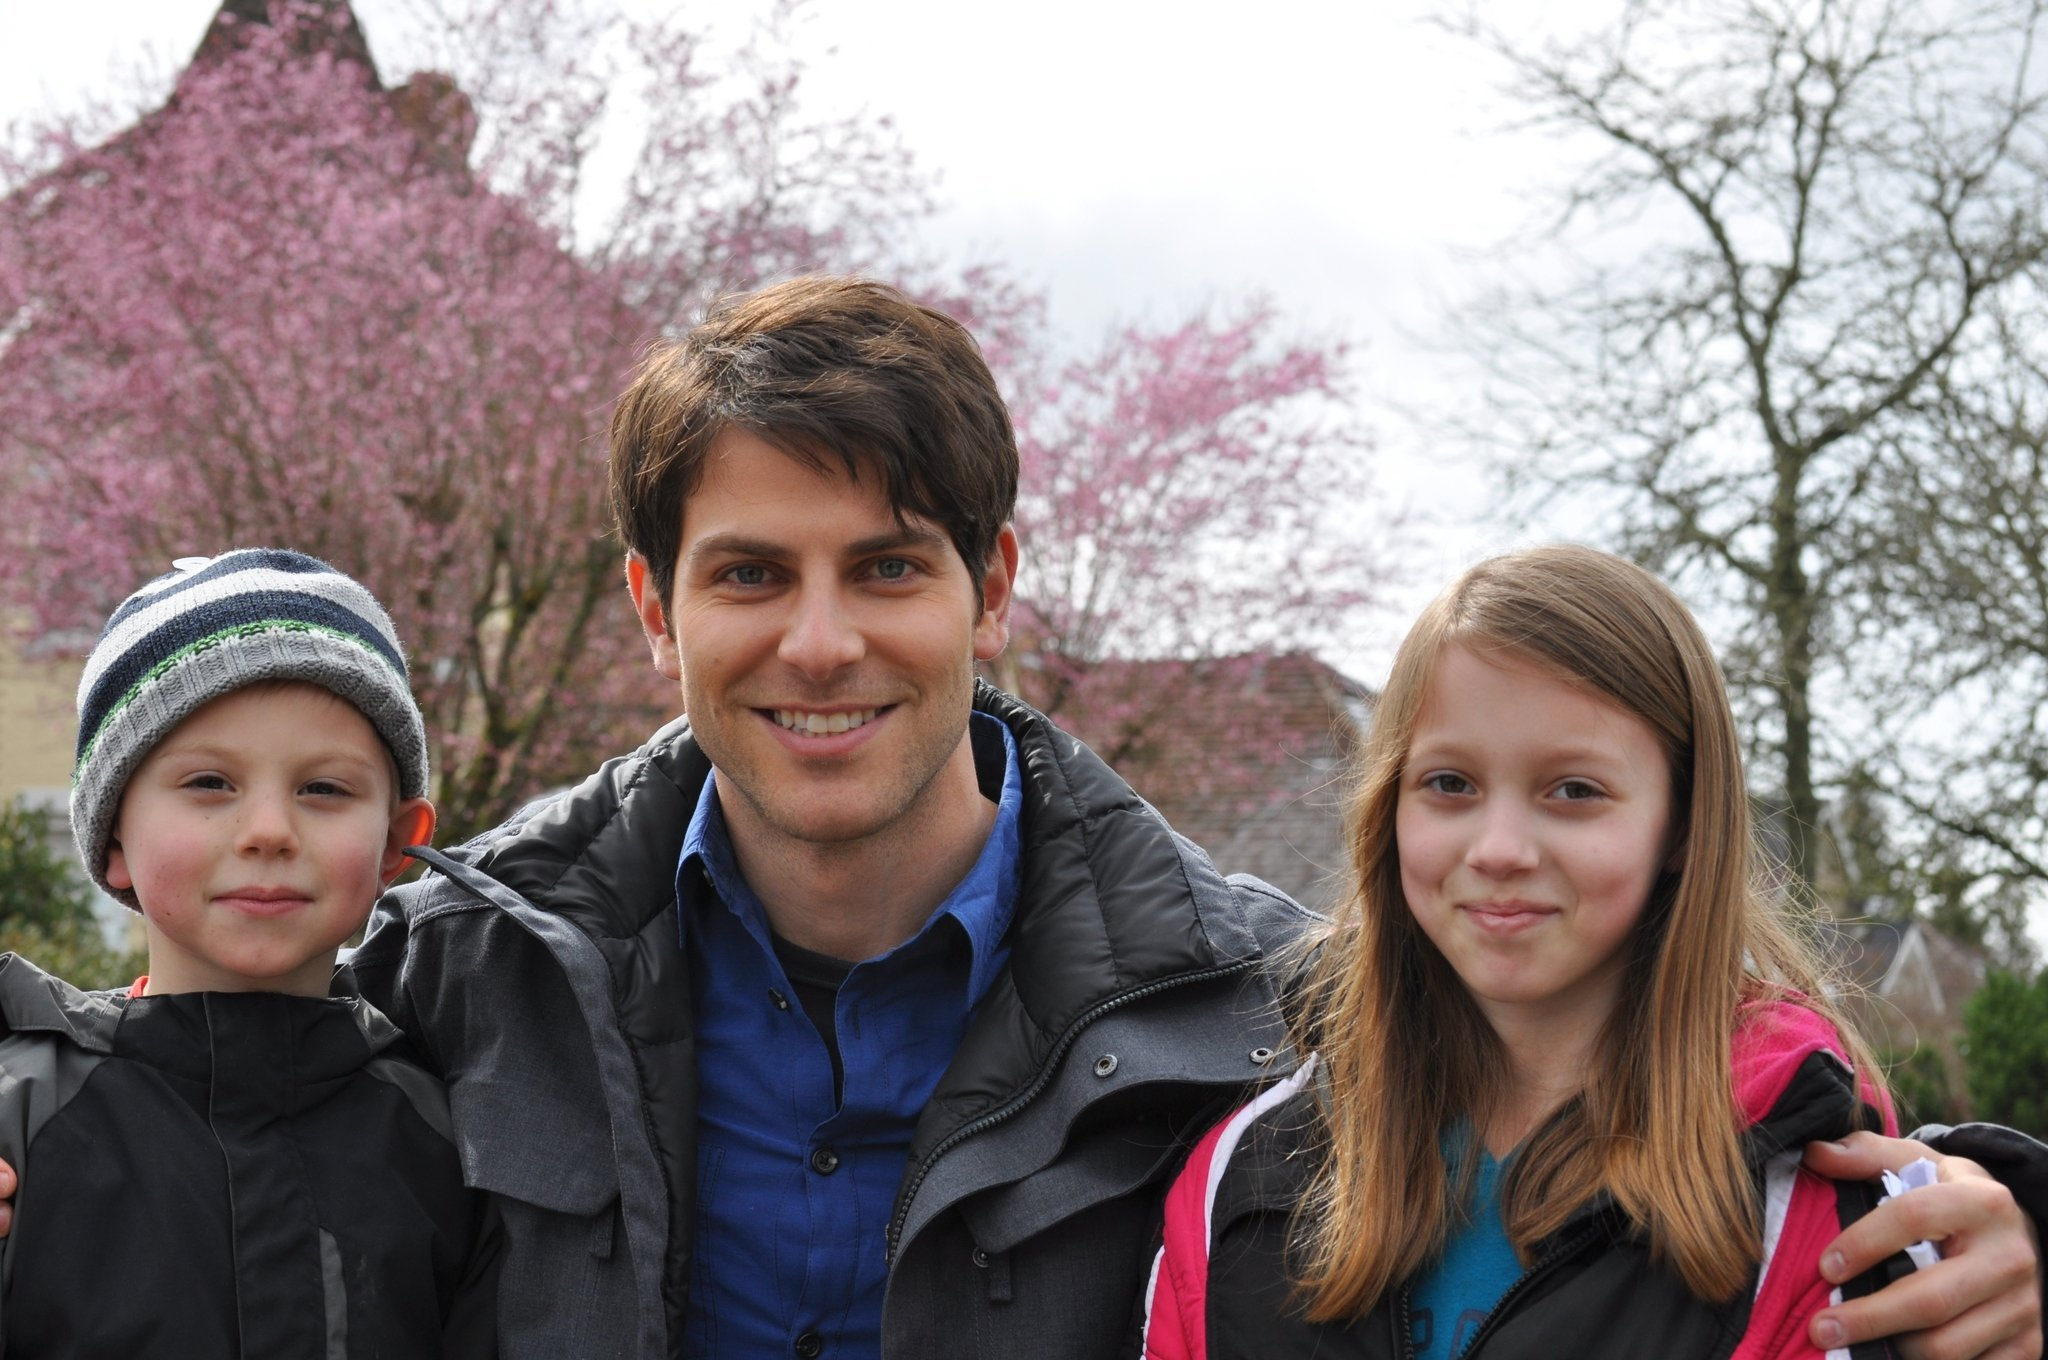 actor who plays watch grimm on nbcGrimm films at West Linn residence OregonLive M1tugiI8